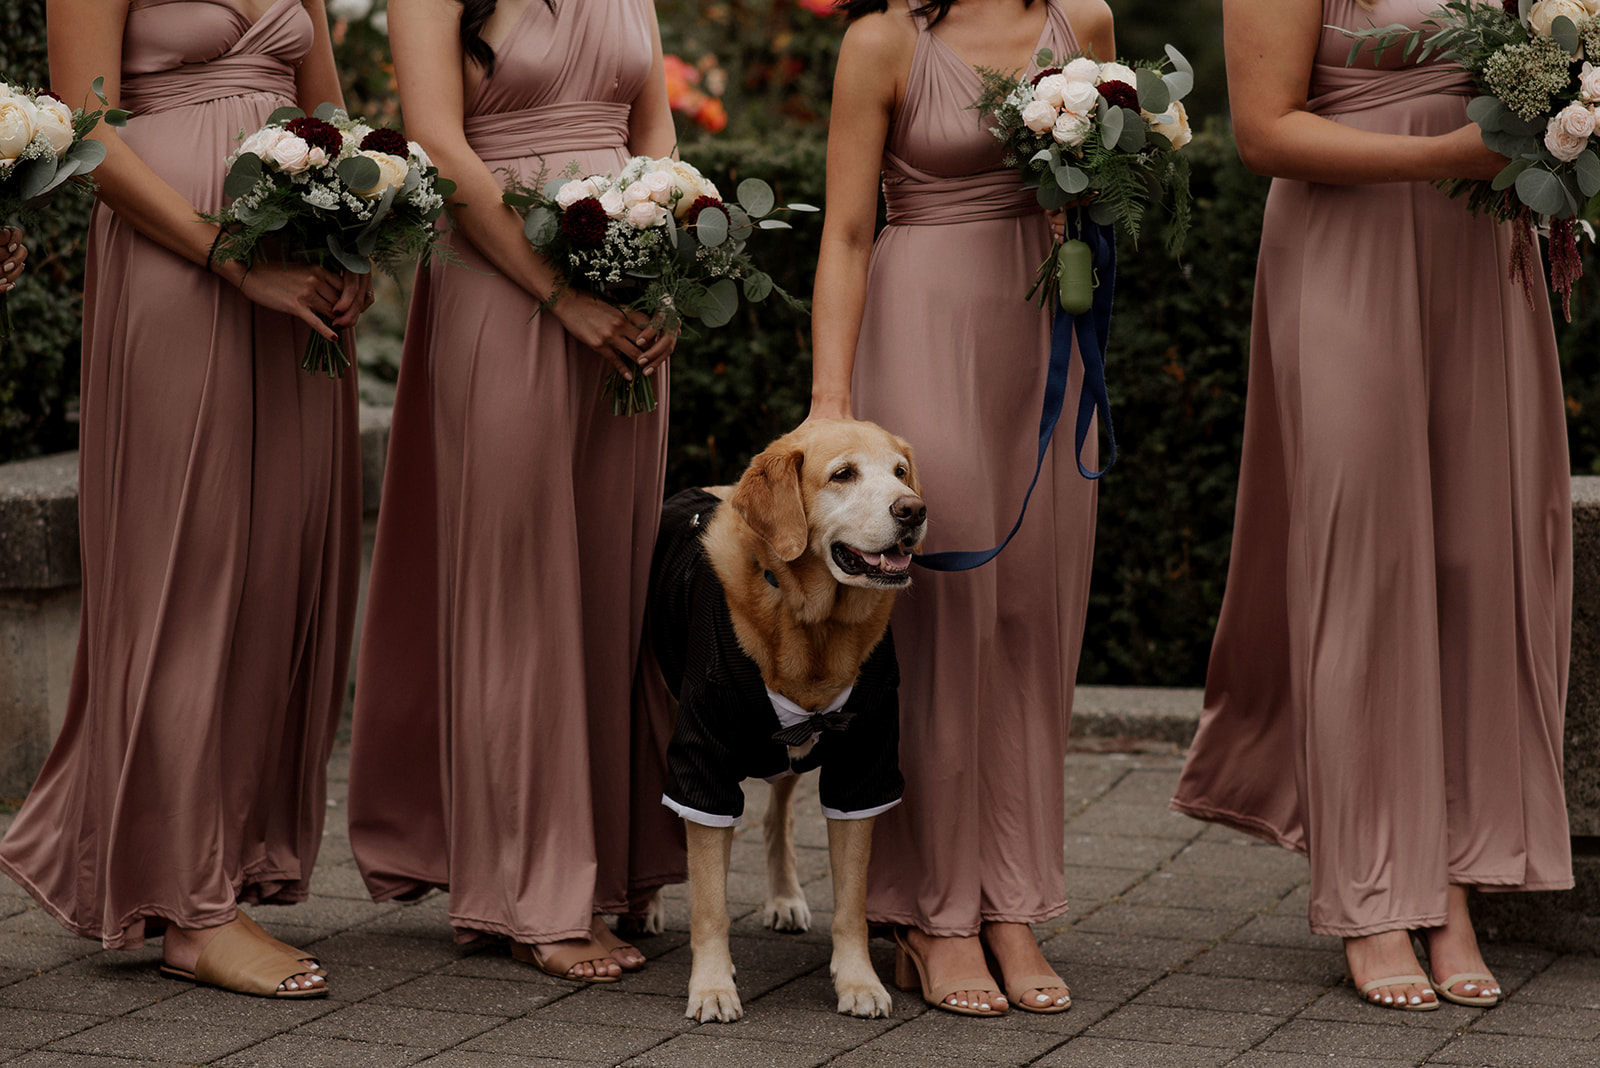 Dog in tux stands with bridesmaids in blush rose gowns